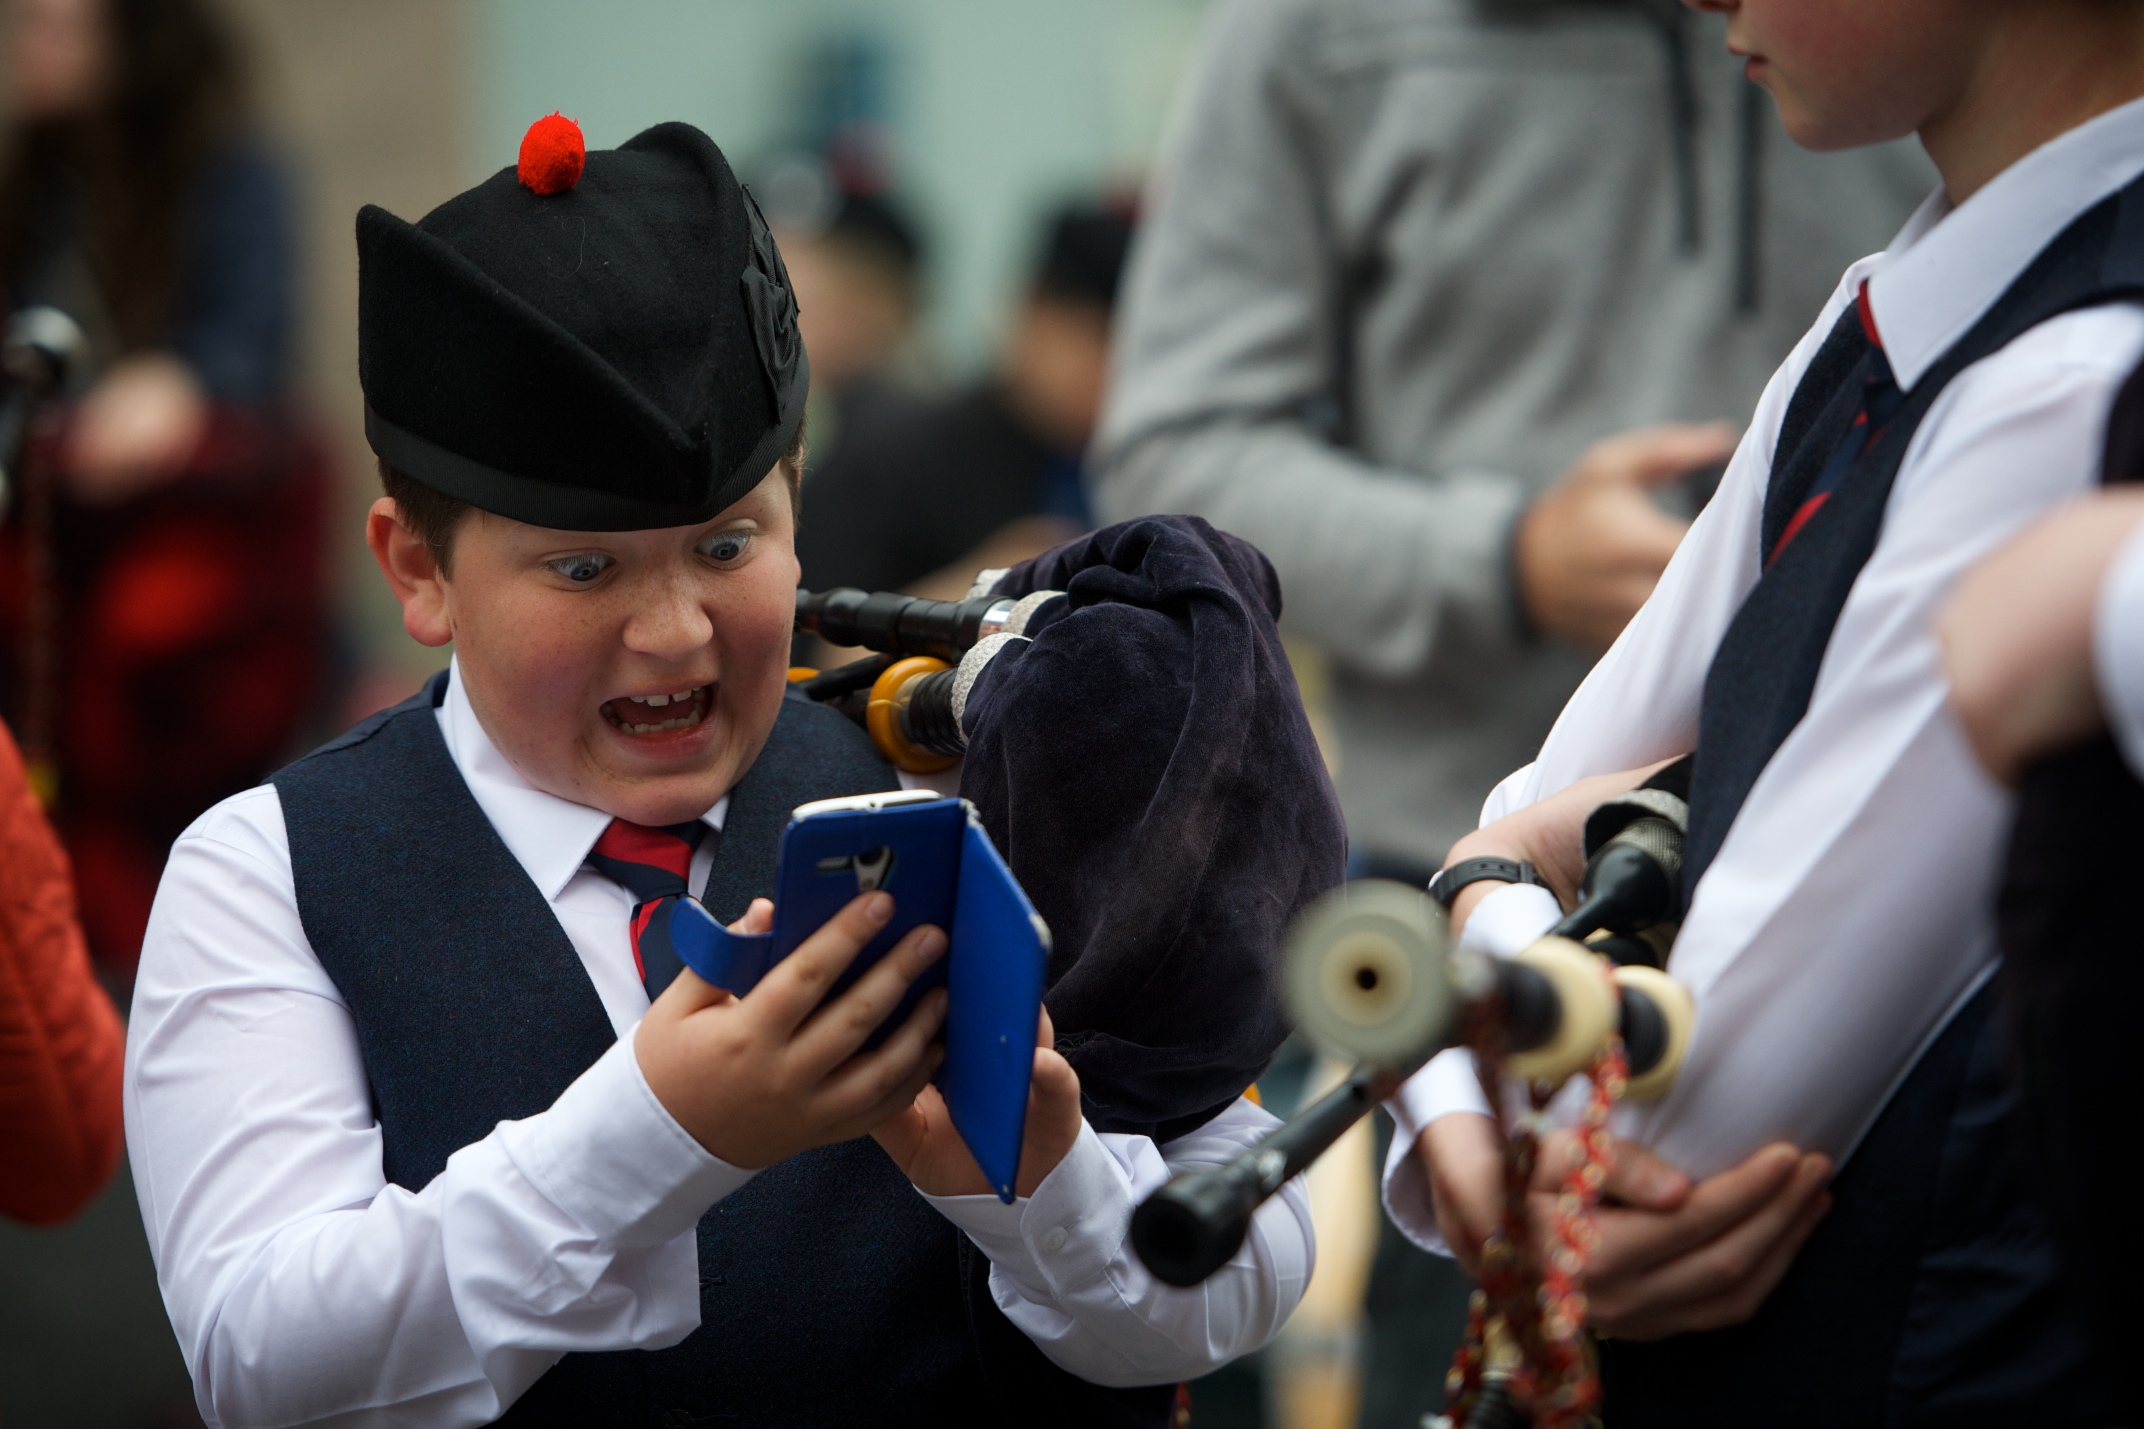 Performances are piping hot at Paisley Championships